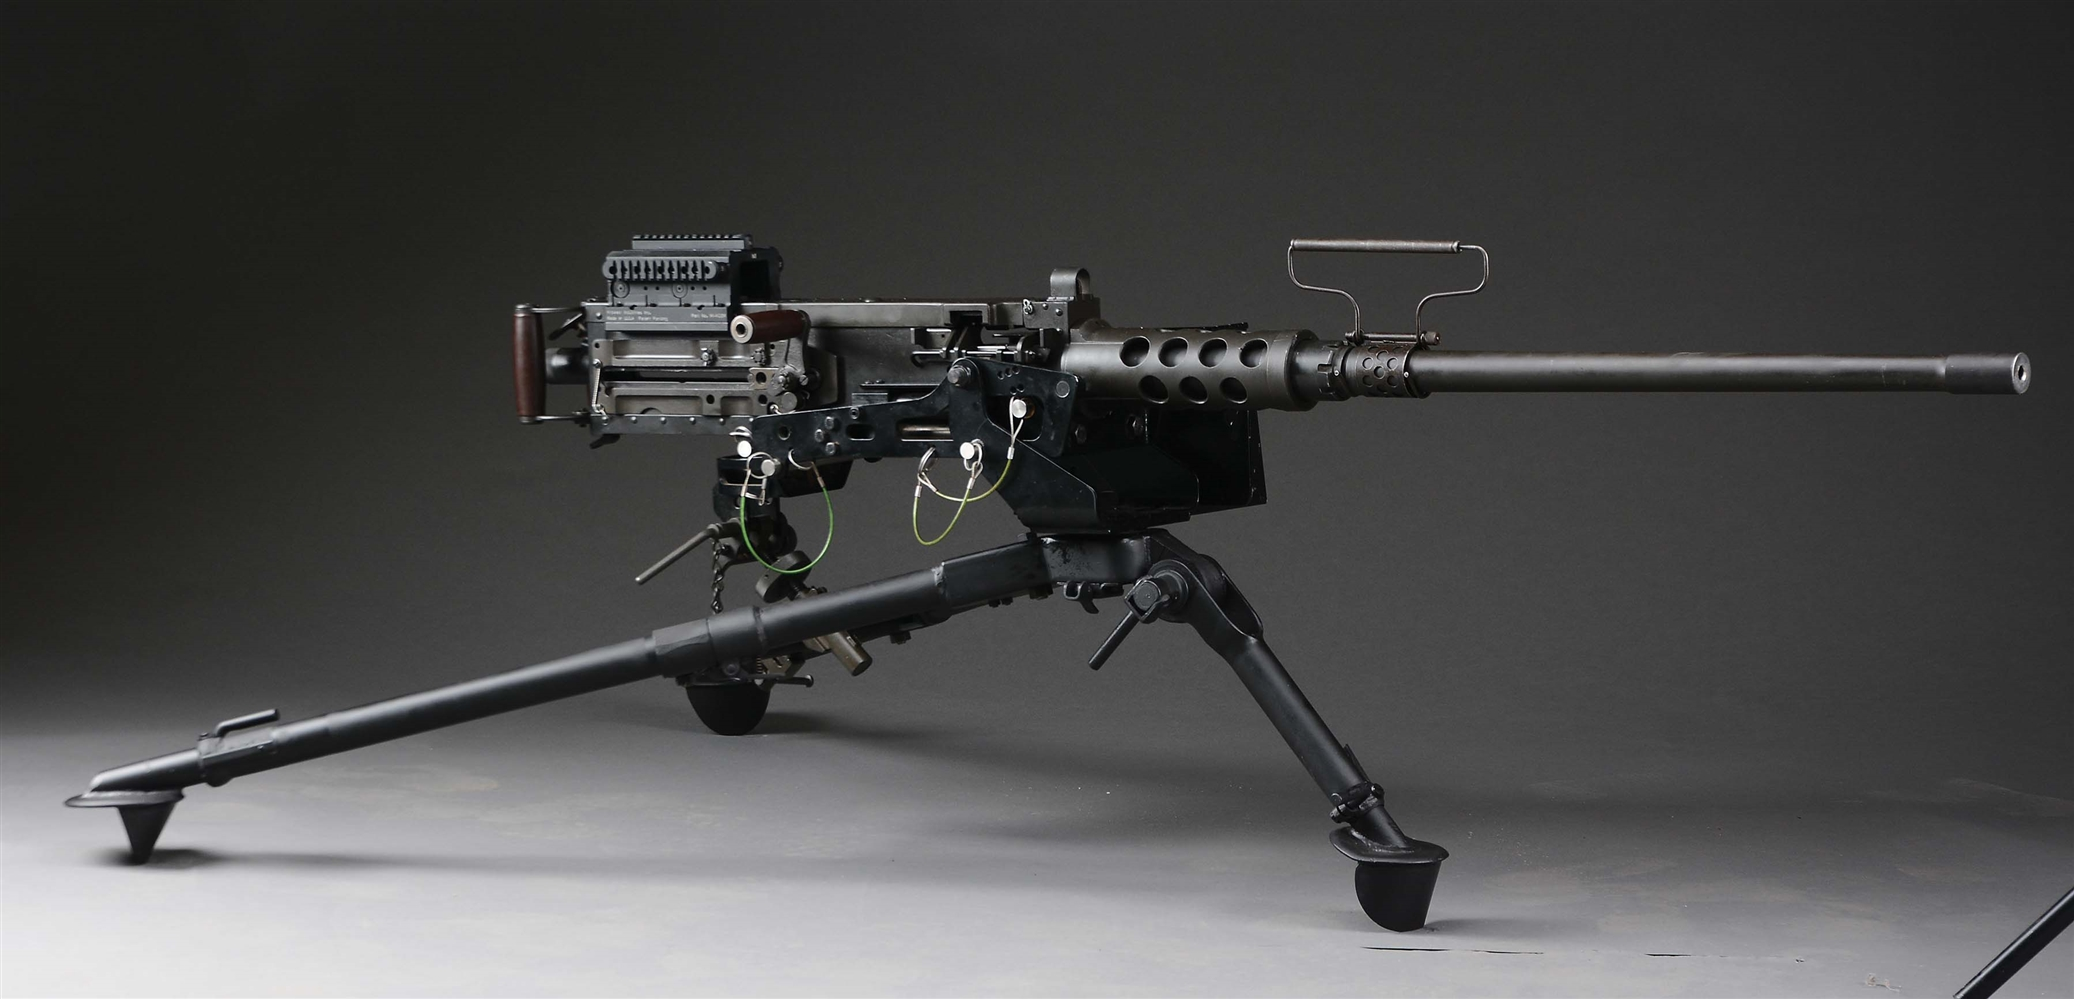 (N) FABULOUS SHOOTERS SET-UP E.R. MAPLES BROWNING M2 .50 CAL BMG MACHINE GUN ON RECIPROCATING TRIPOD WITH ACCESSORIES (FULLY TRANSFERABLE)